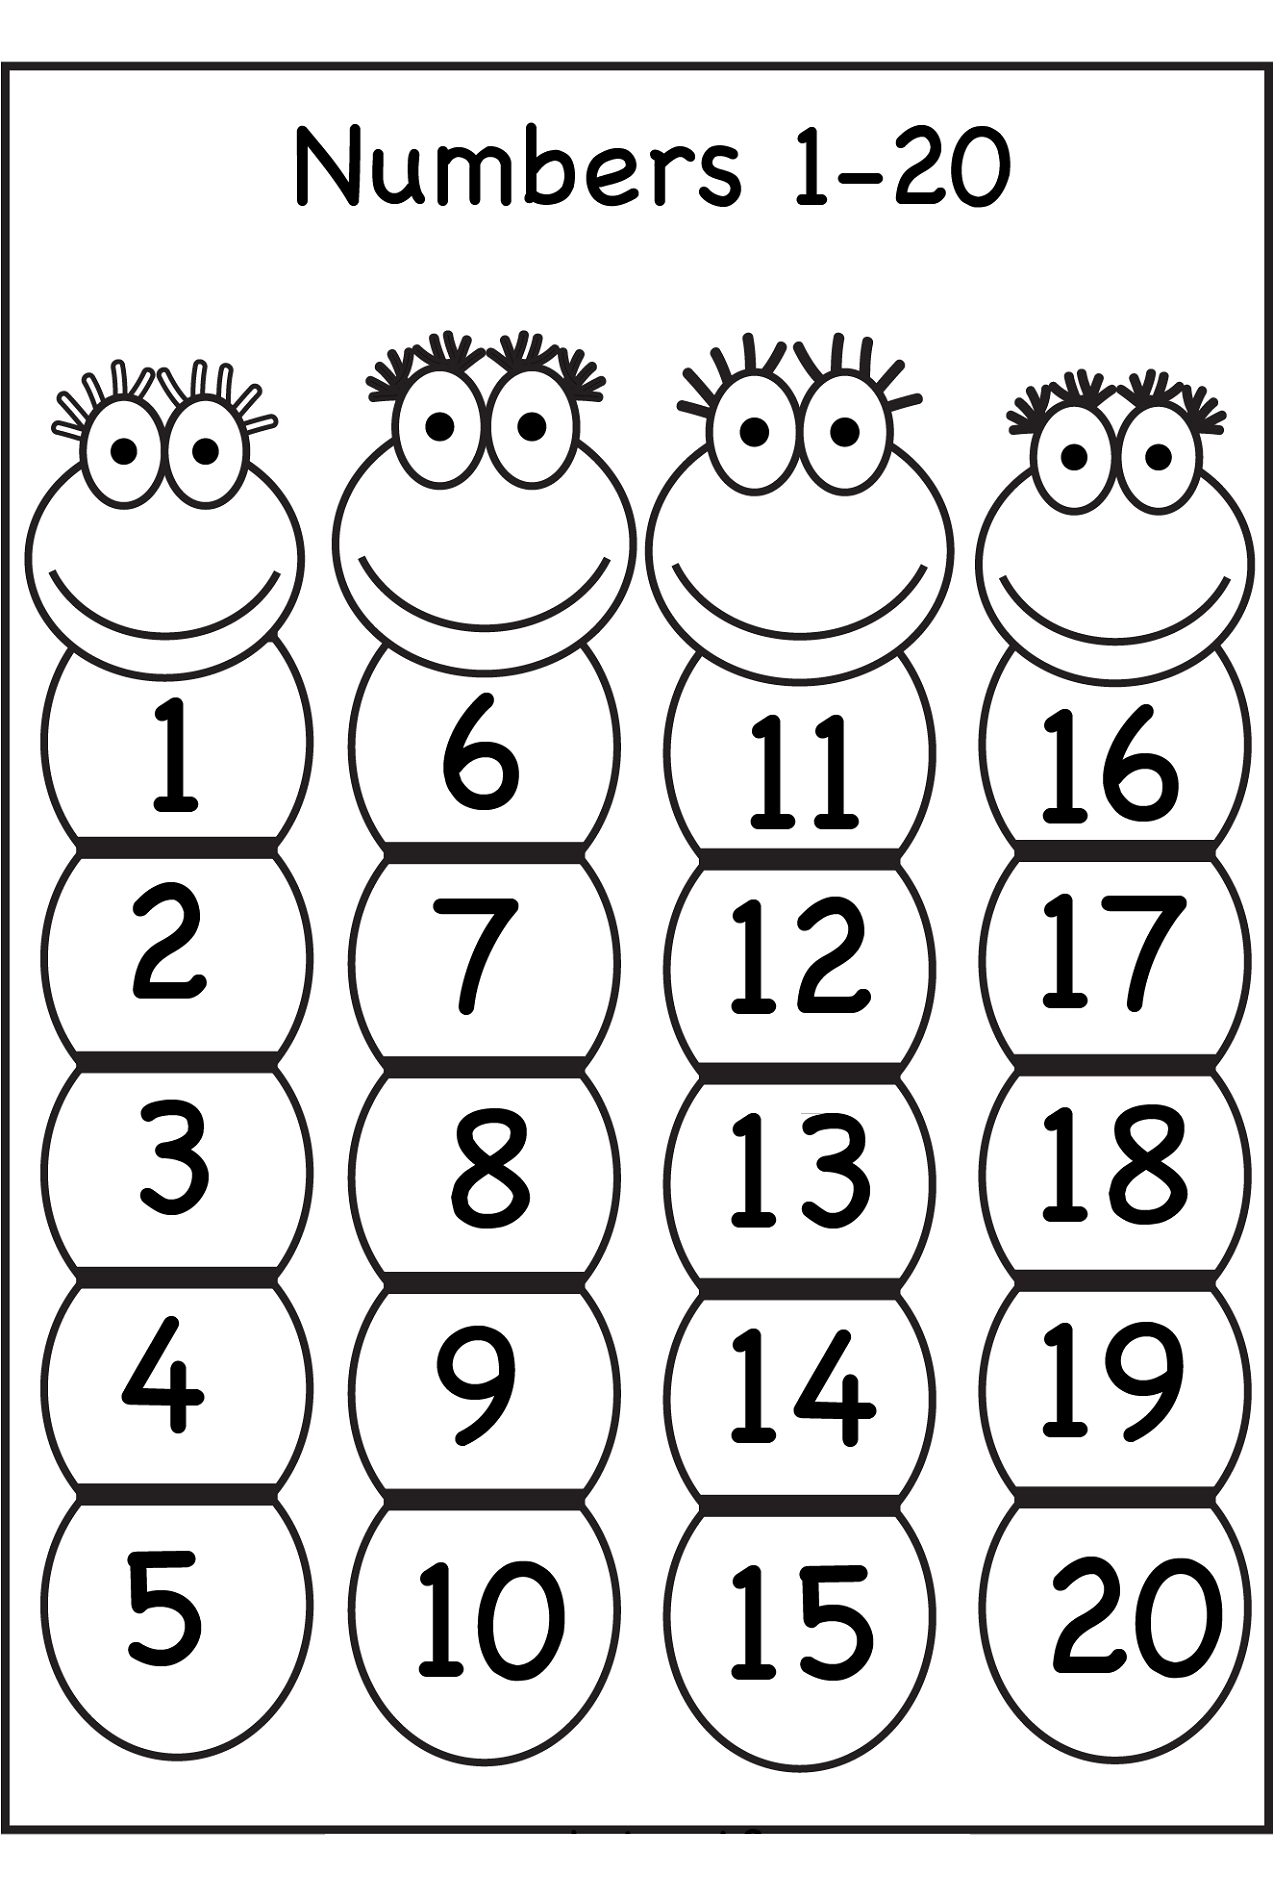 Worksheet Numbers 1 20 Worksheets Grass Fedjp Worksheet